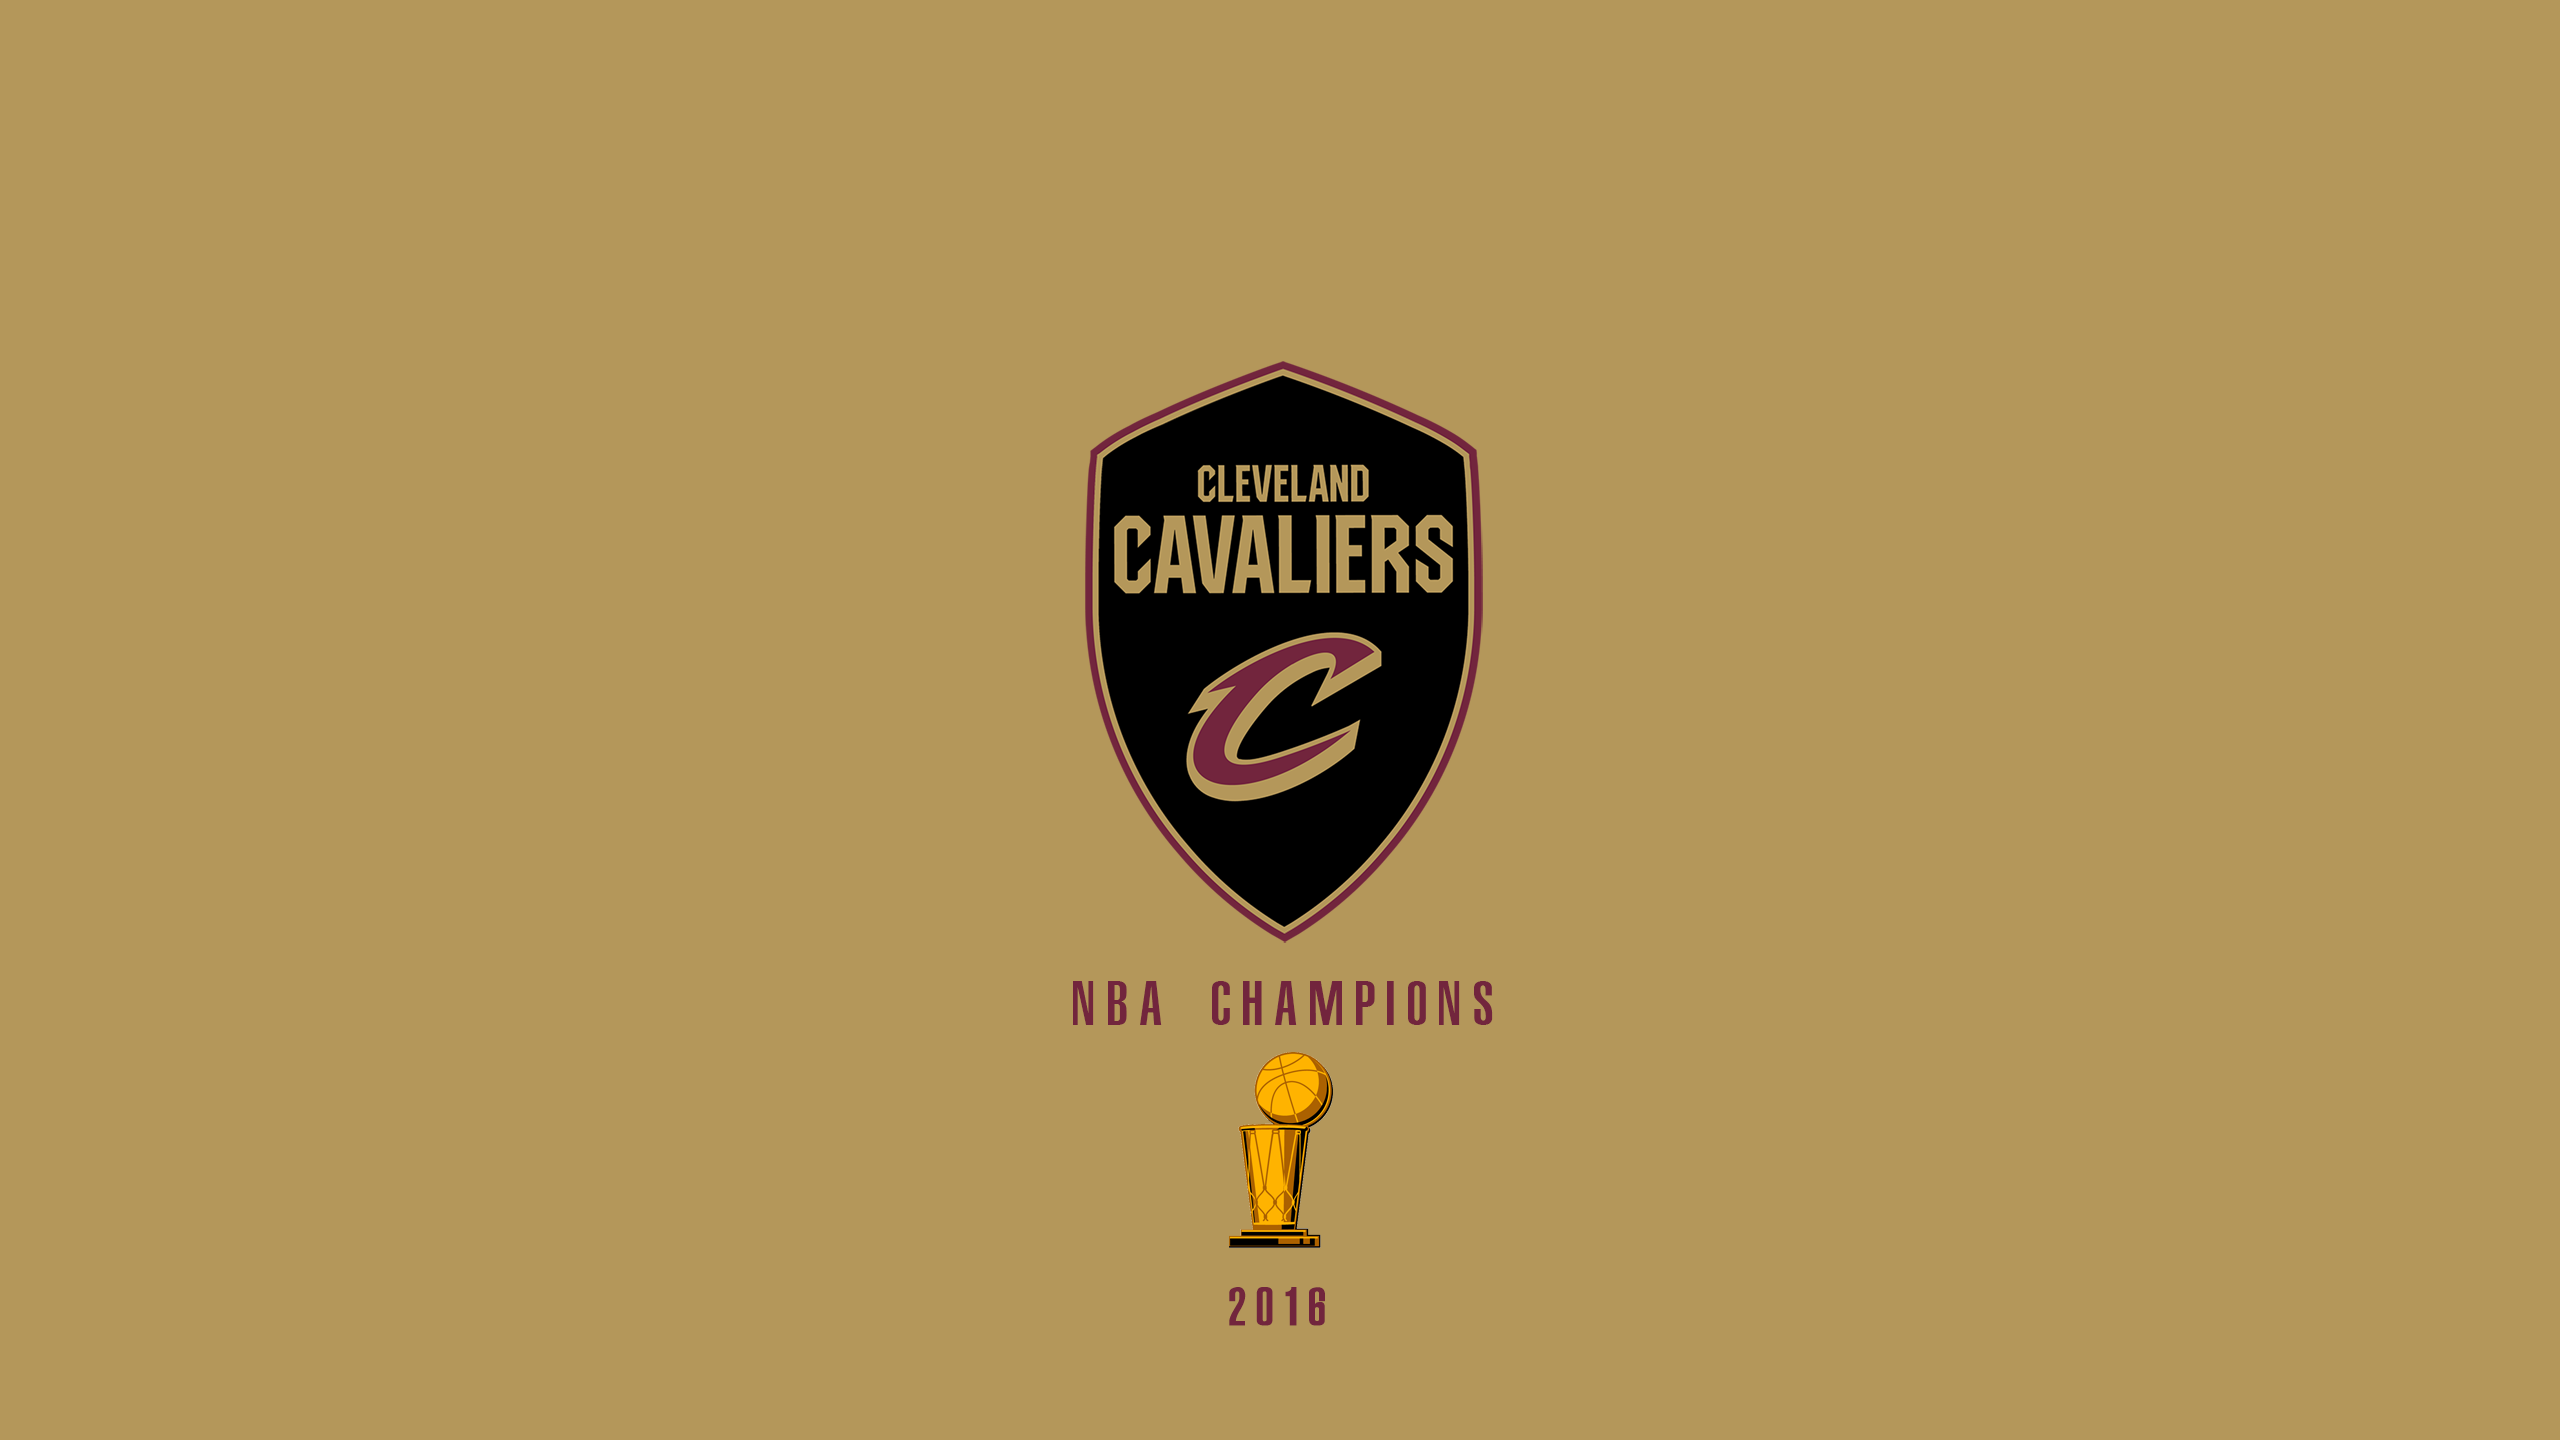 Cleveland Cavaliers - NBA Champs